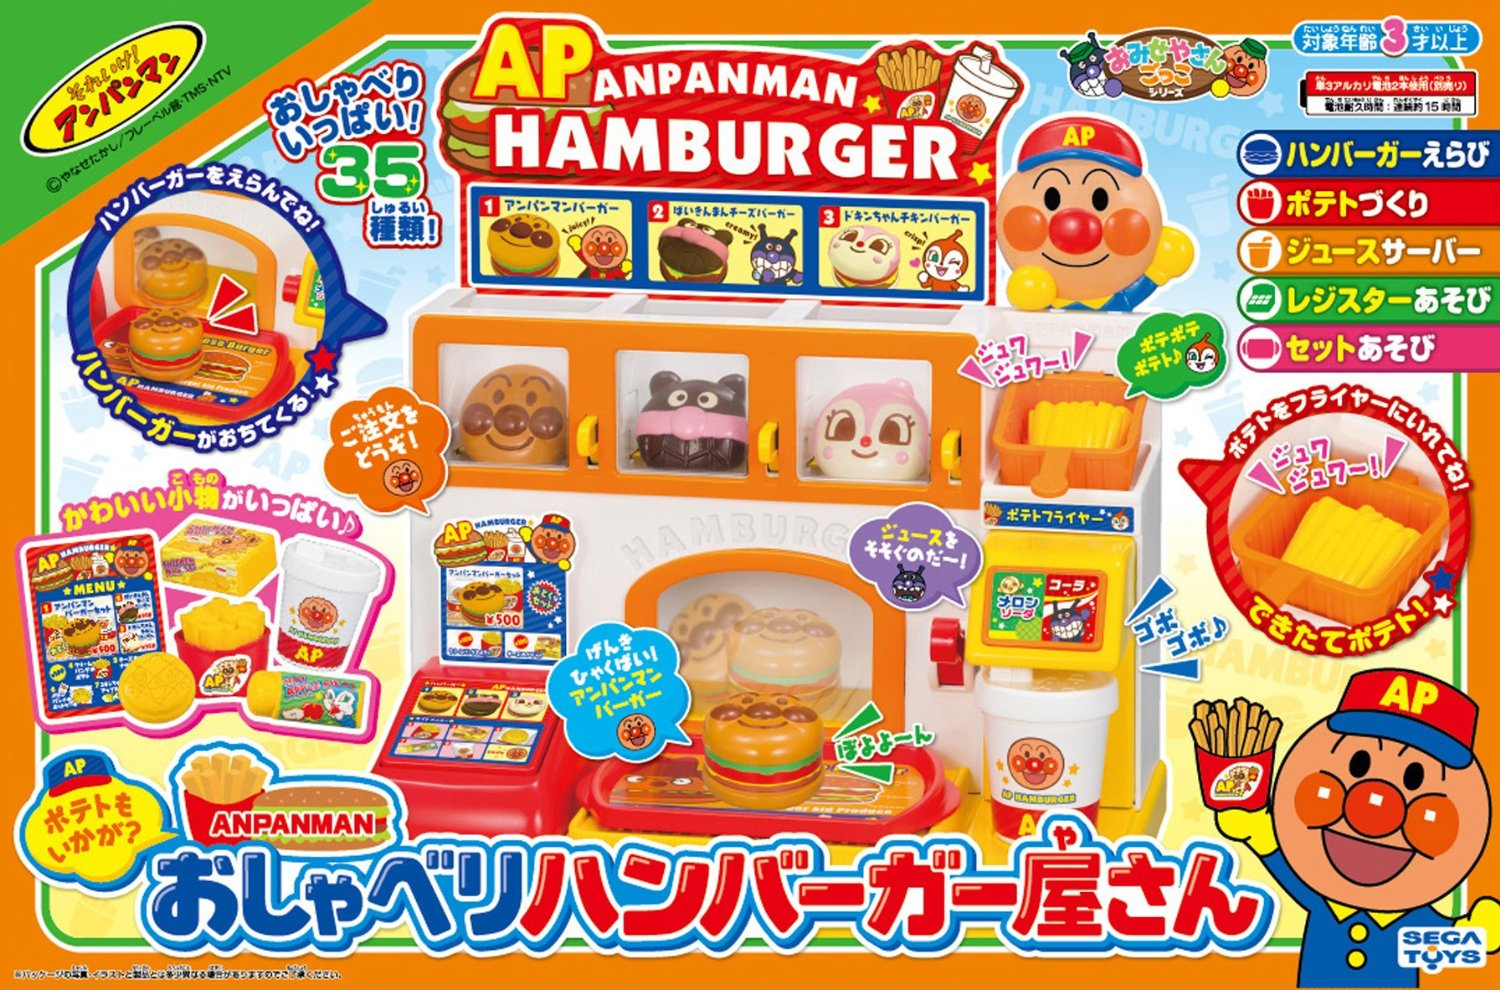 Anpanman French fries (available only on weekdays) but how? anpanman talking hamburger shop I Sega Toys